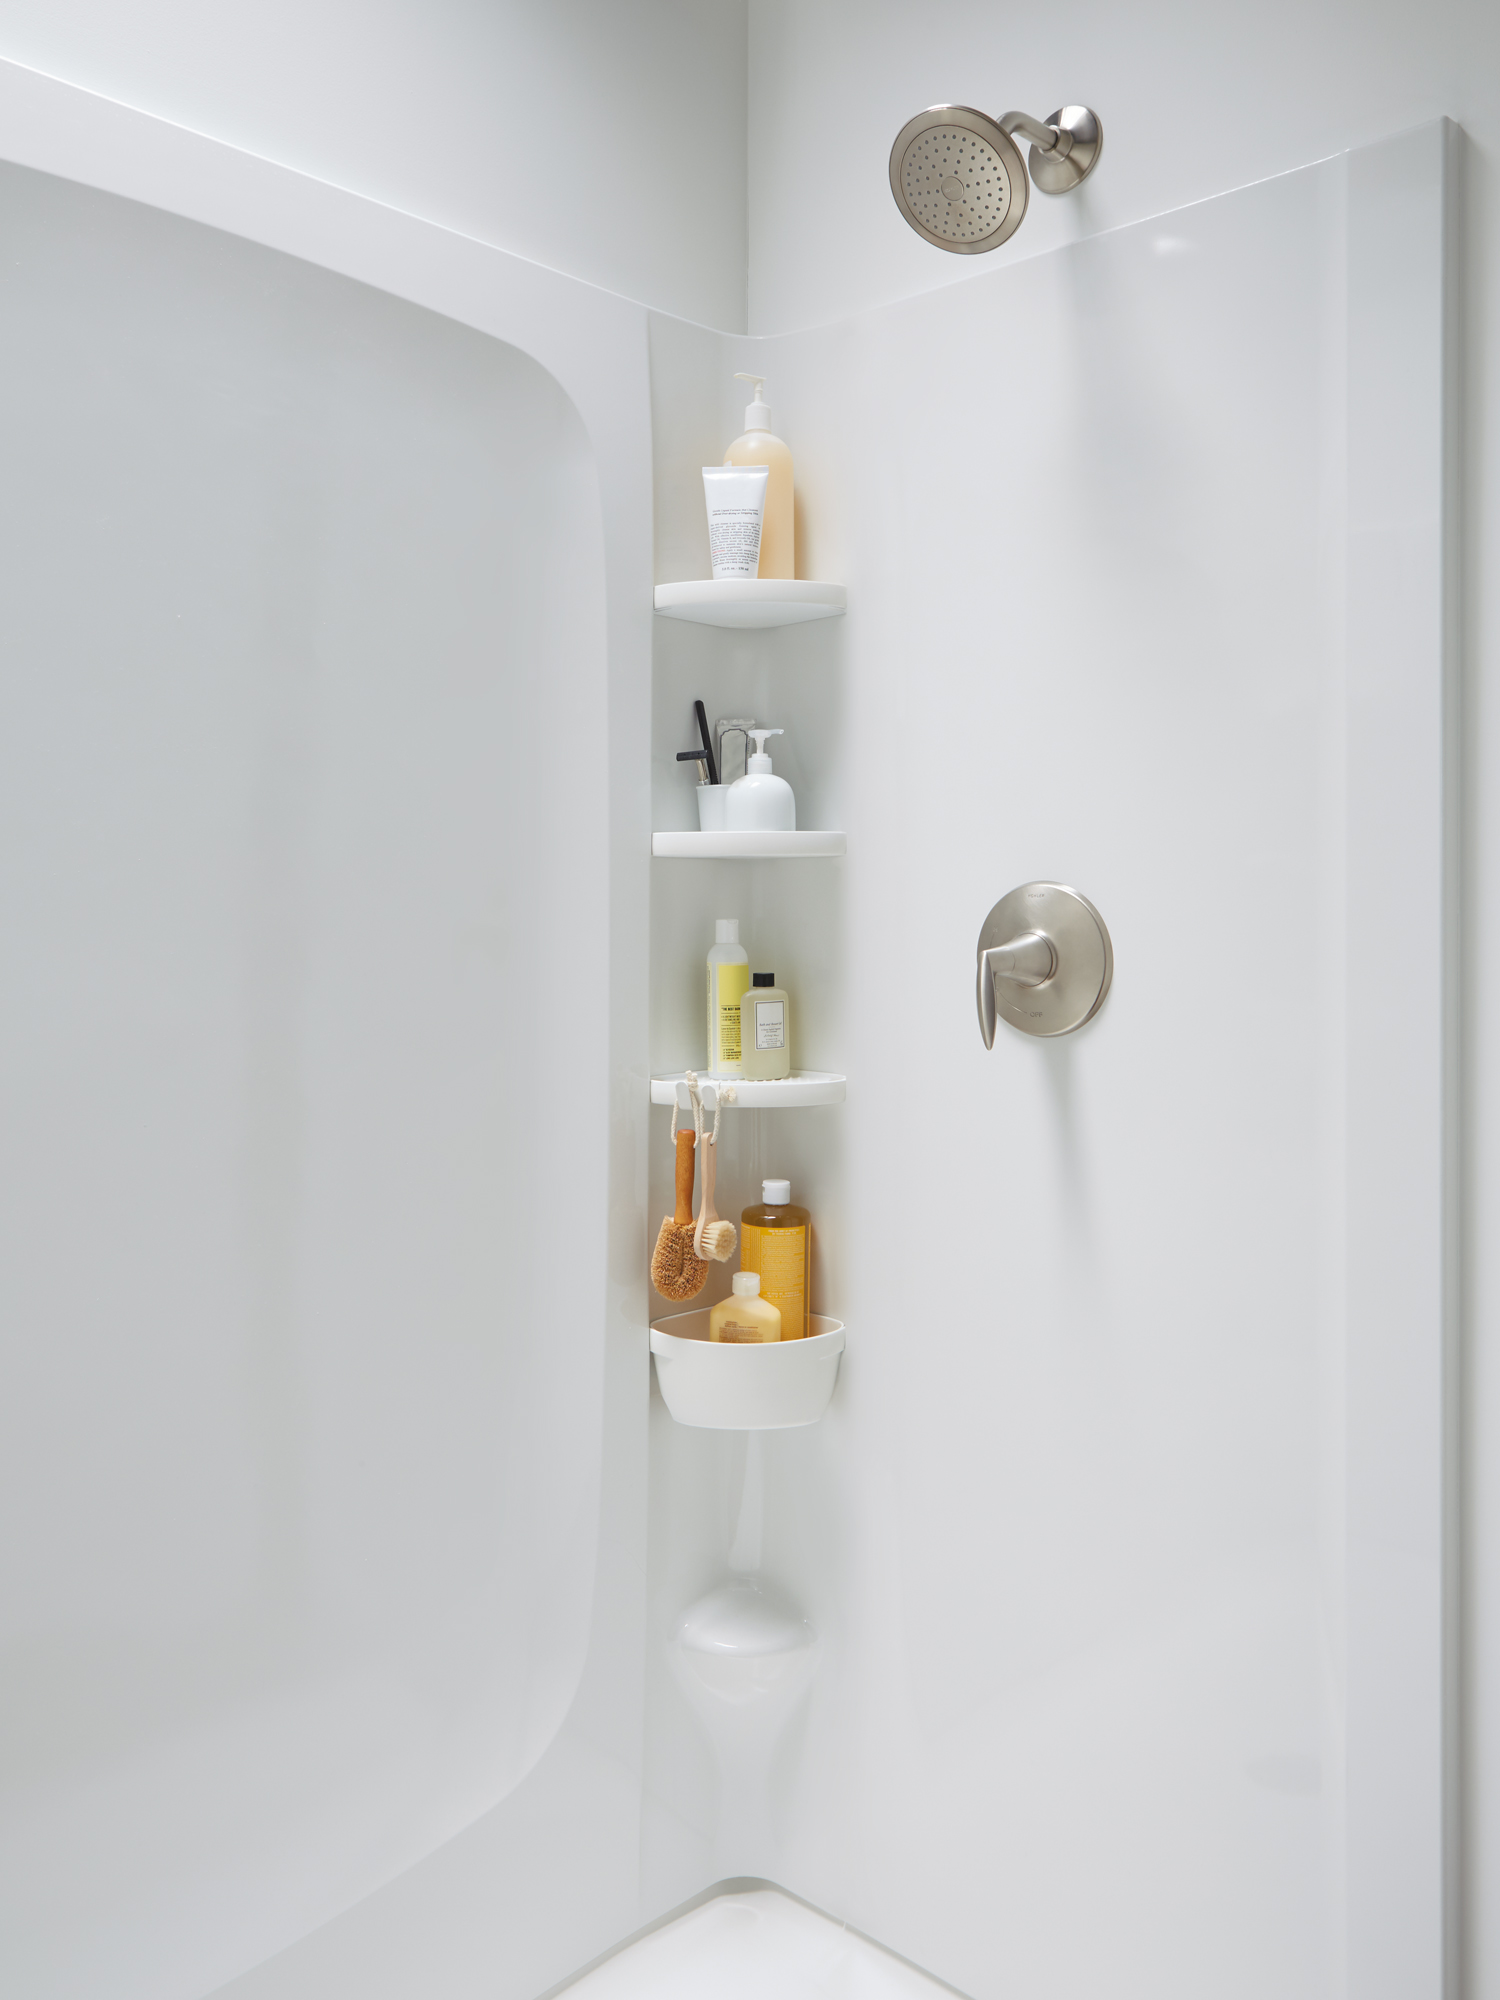 Store More In The Shower With Sterling S Store Jlc